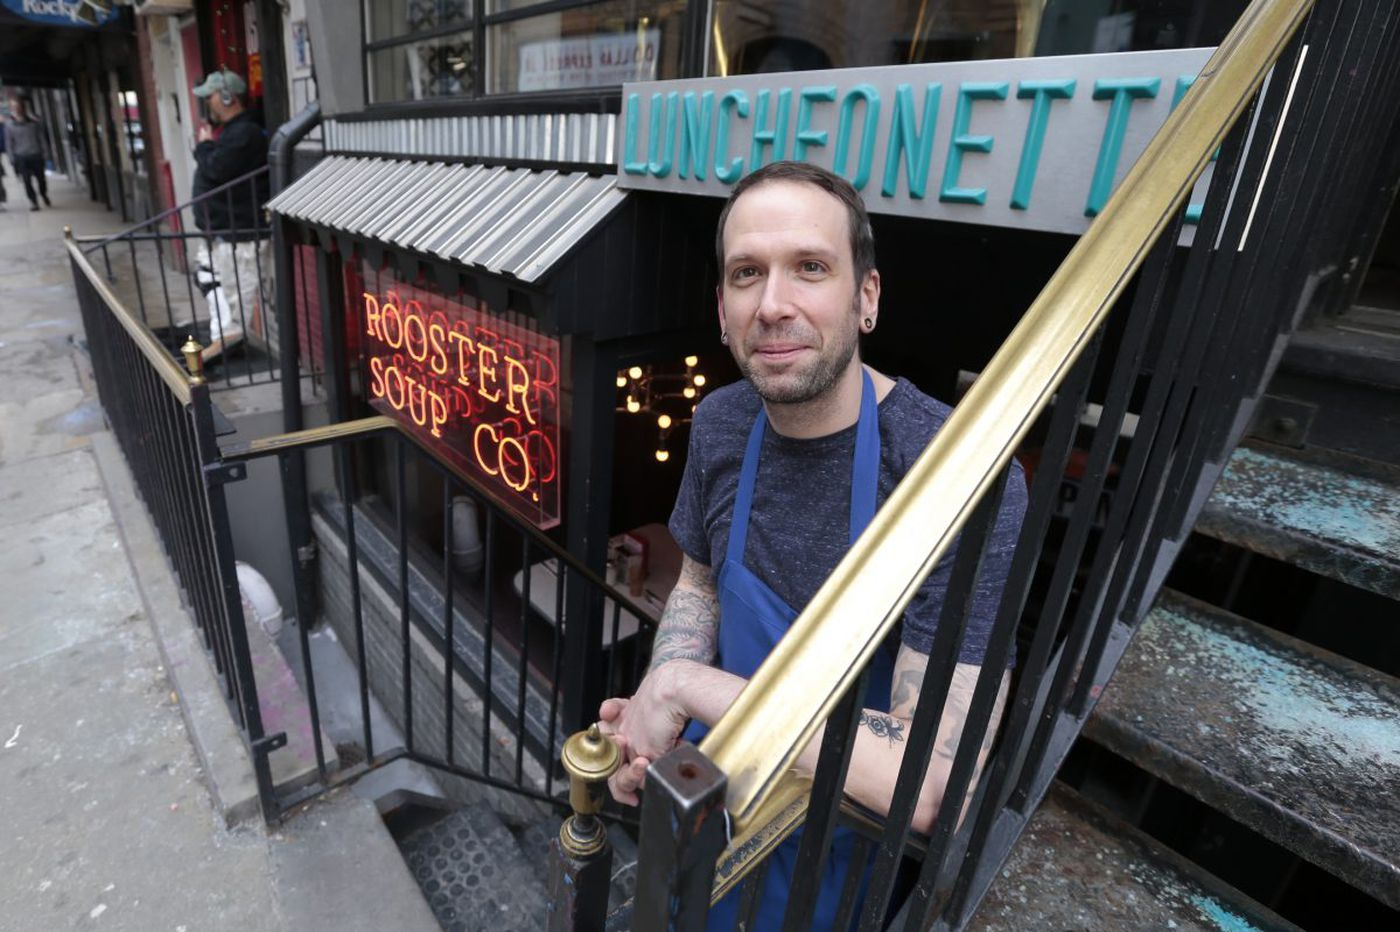 At Rooster Soup, Sabatino rethinking how and why he cooks